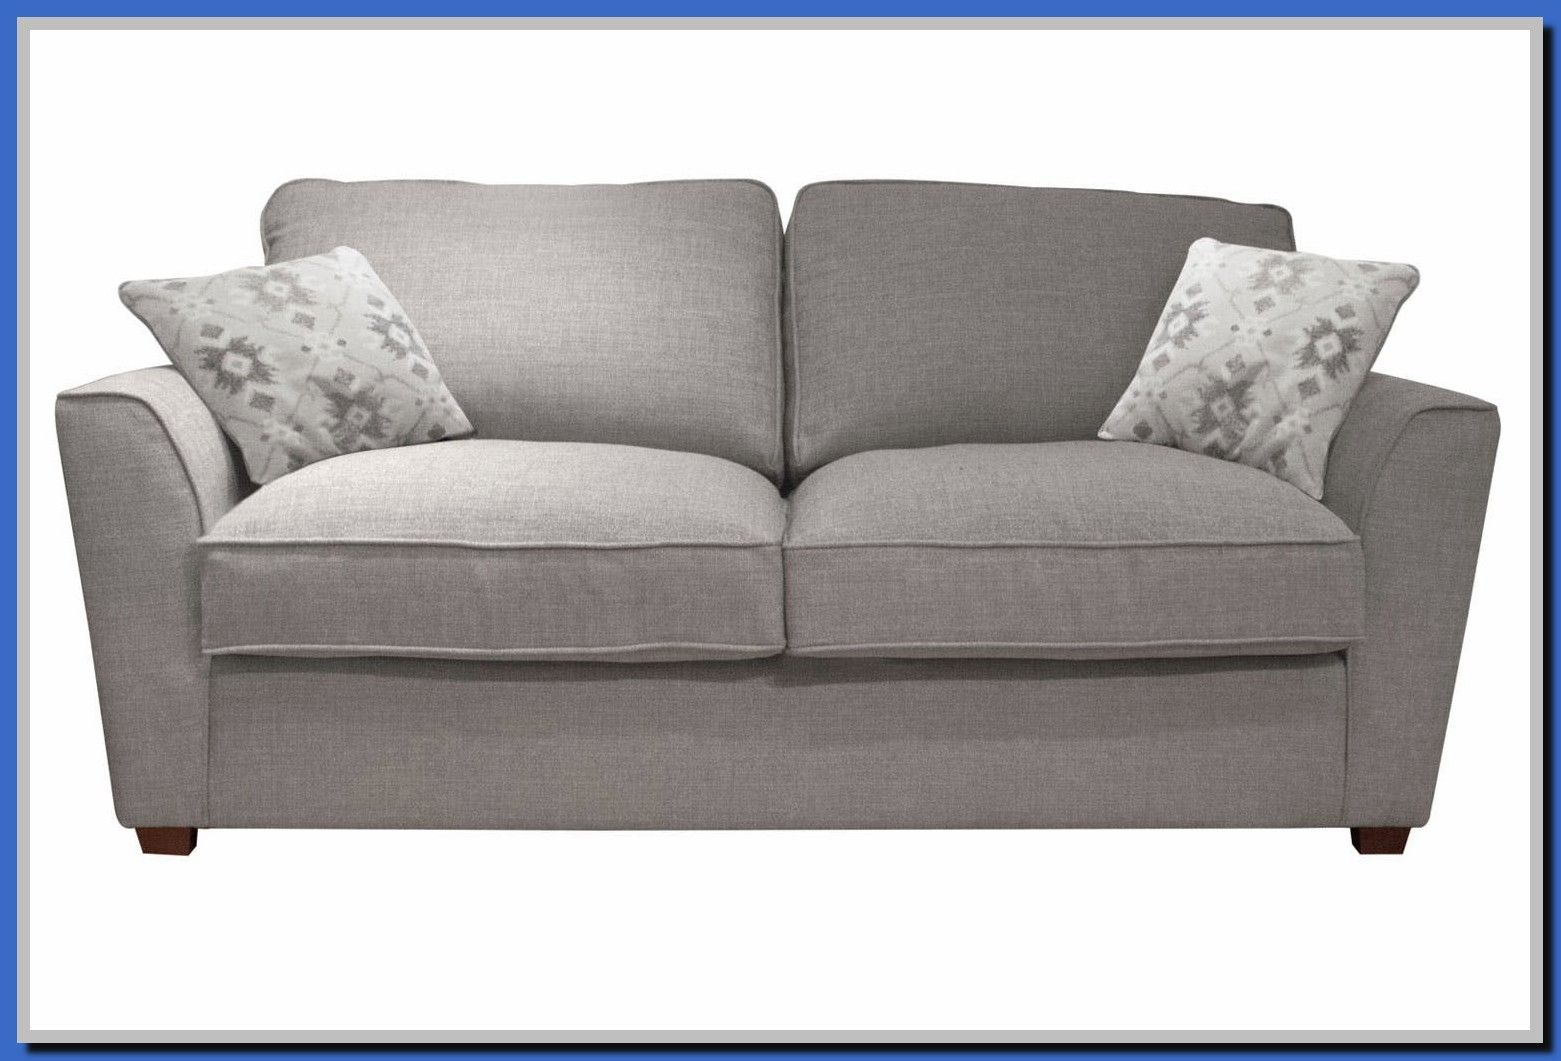 35 Reference Of Sofa Bed Harvey Norman In 2020 Sofa Shop Corner Sofa Fabric Grey Leather Sofa